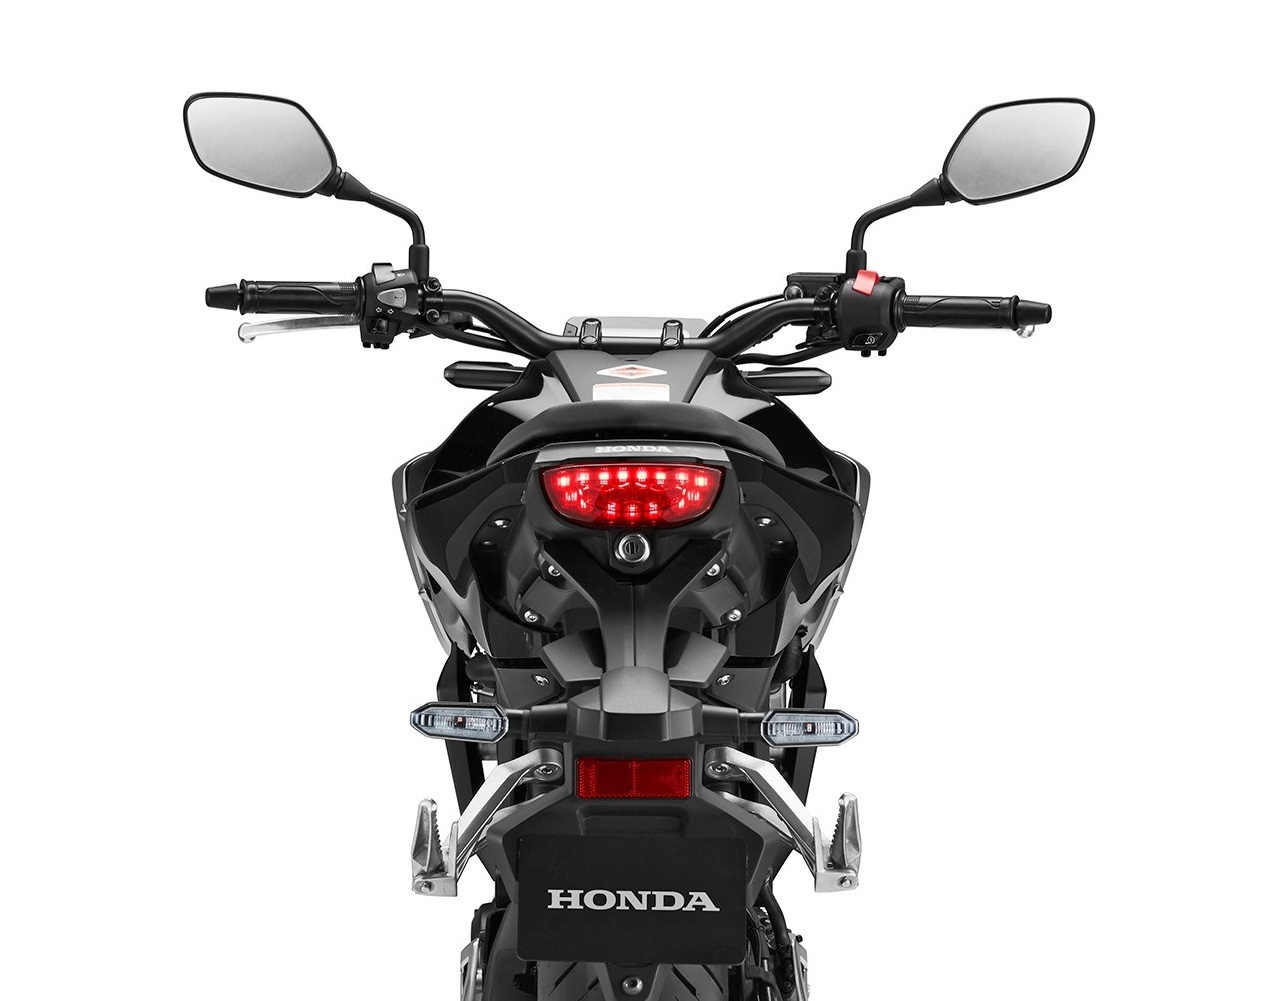 Honda 125 cg 2019 price in pakistan